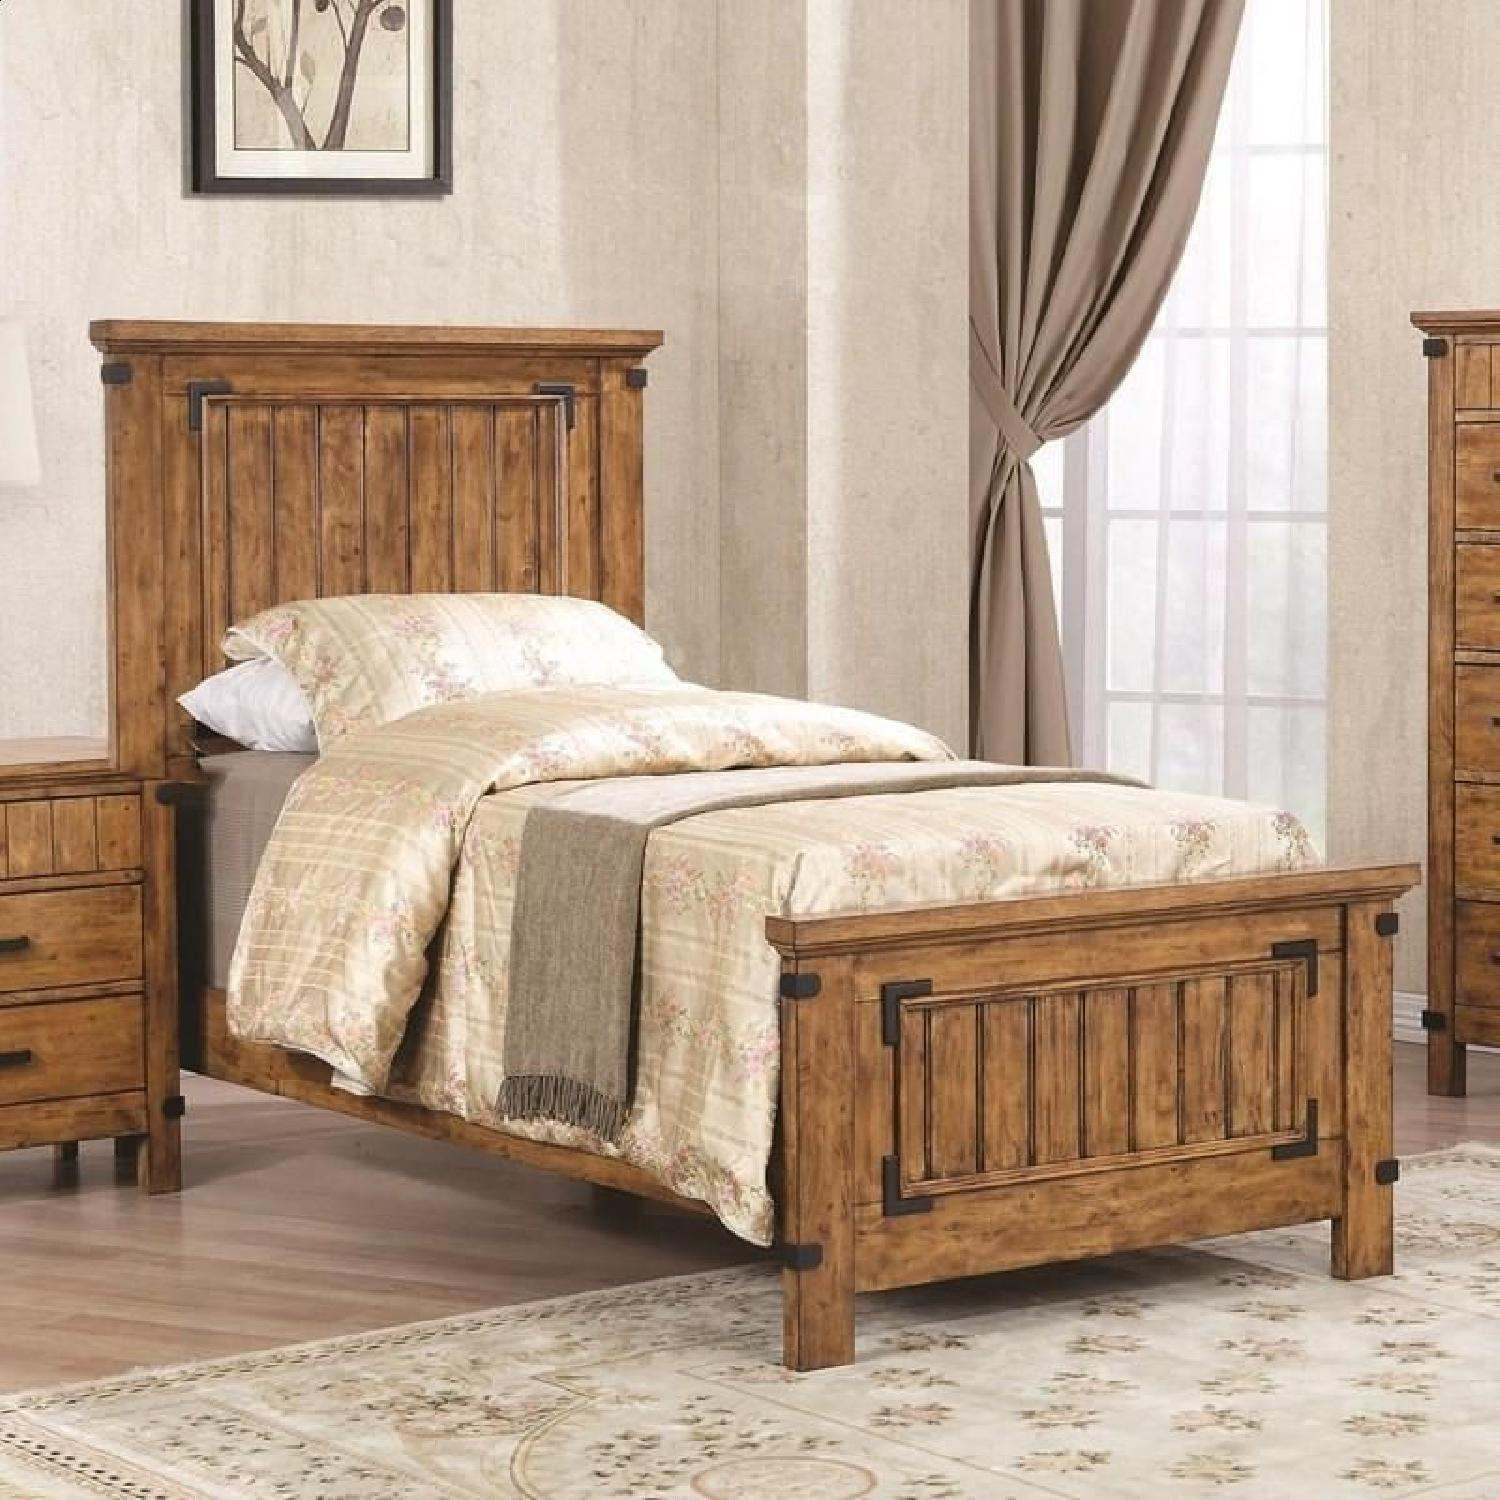 Rustic Style Twin Bed in Warm Honey Brown Finish - image-3